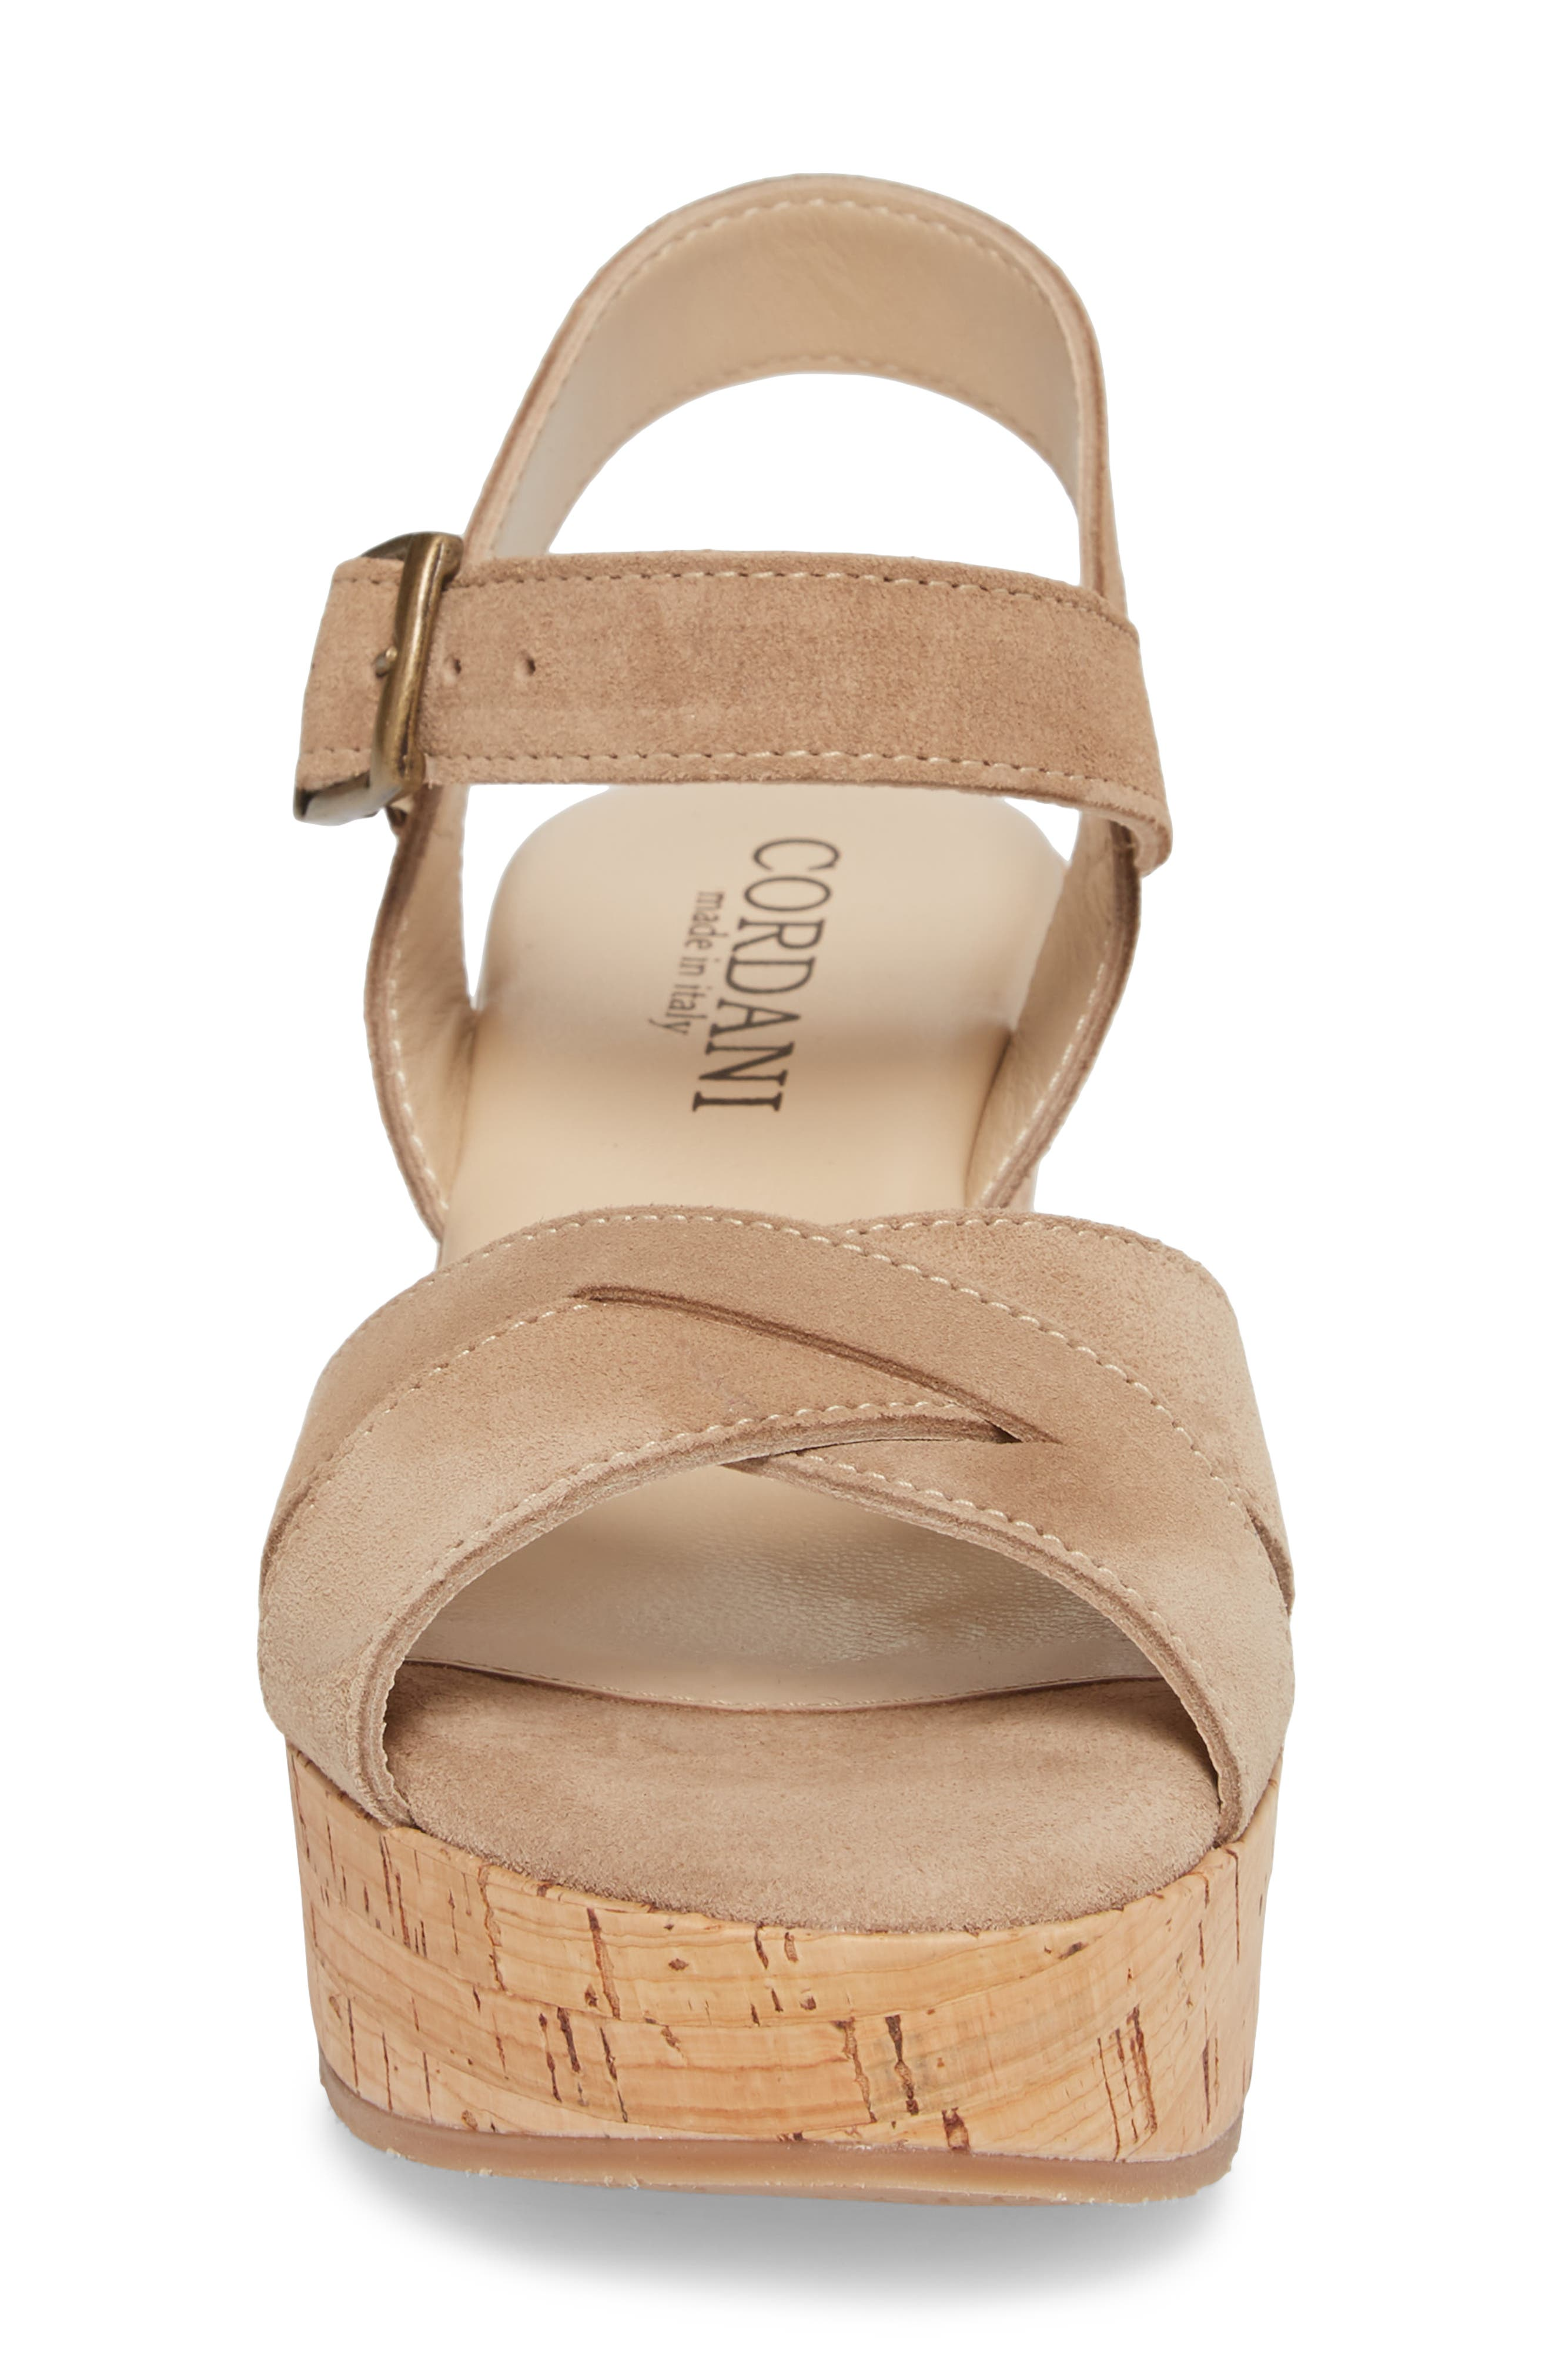 Candy Wedge Sandal,                             Alternate thumbnail 4, color,                             CORDA SUEDE